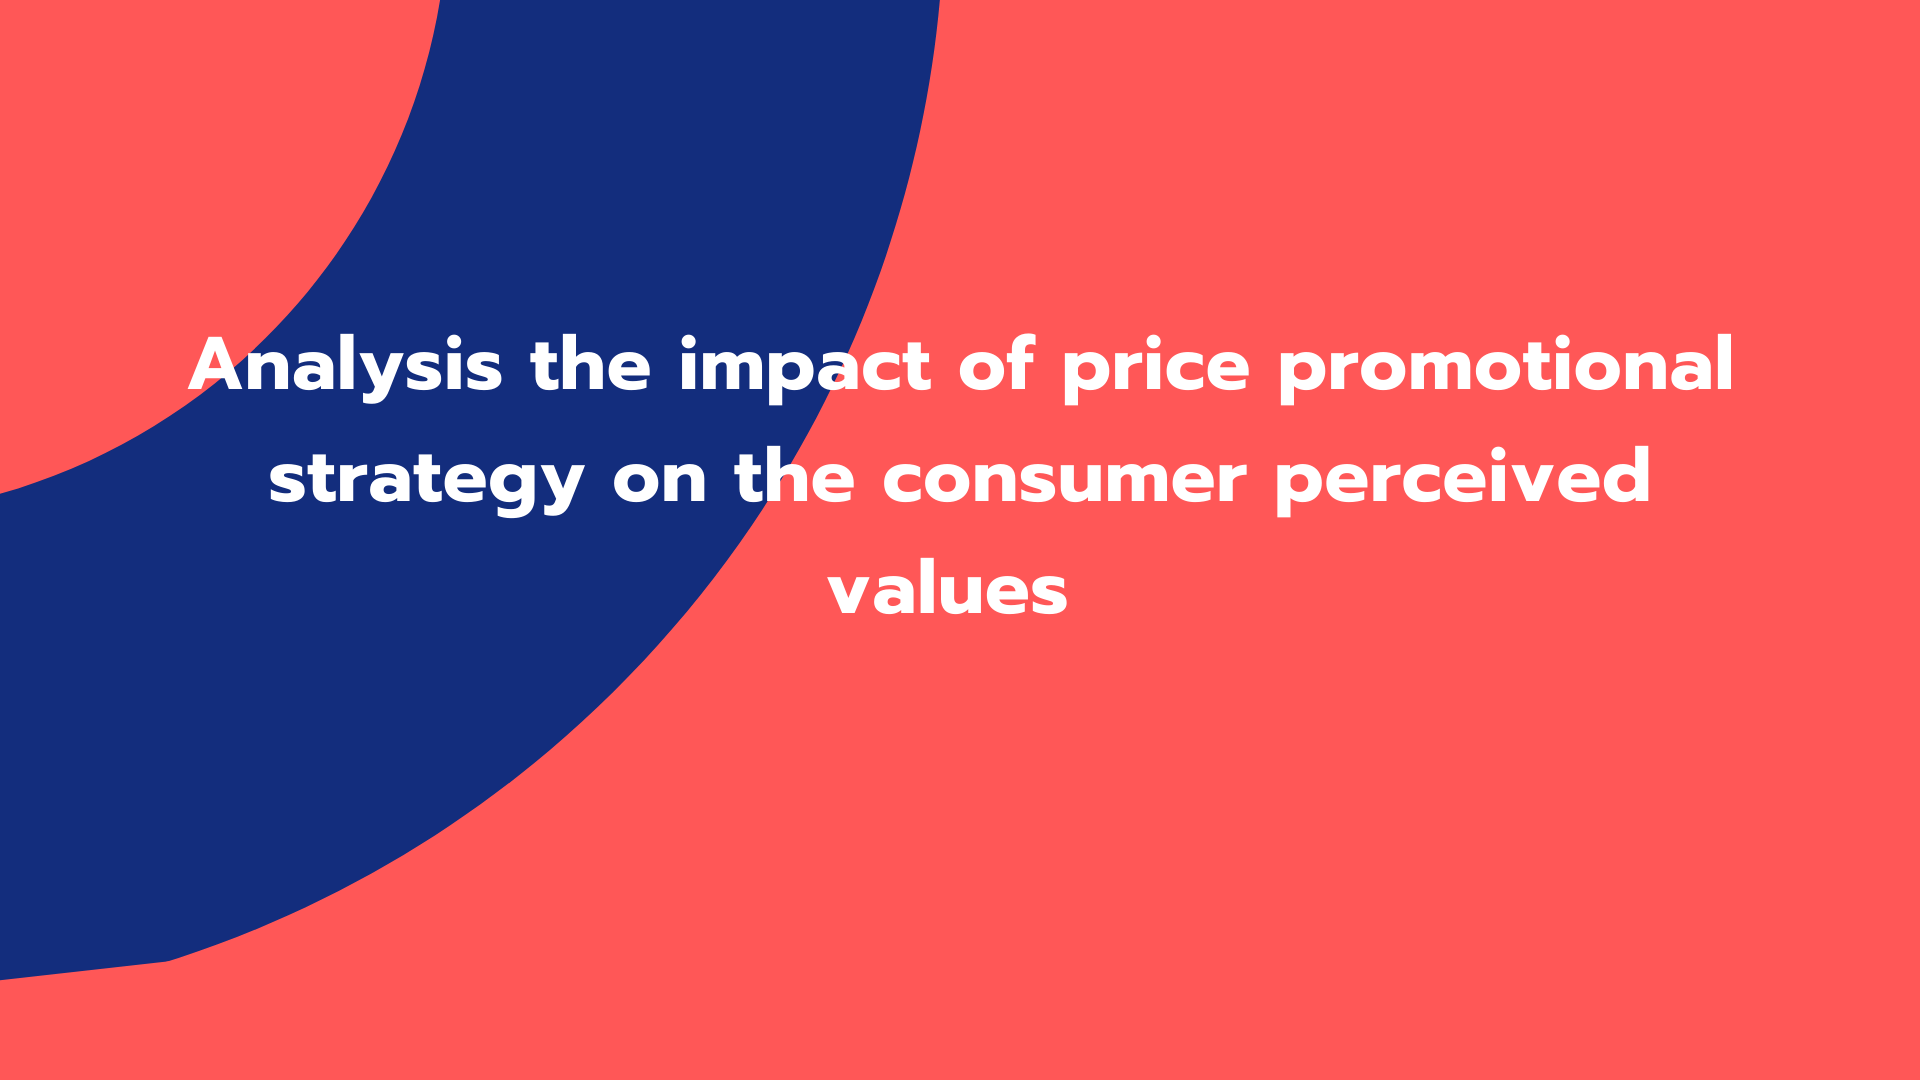 Analysis the impact of price promotional strategy on the consumer perceived values